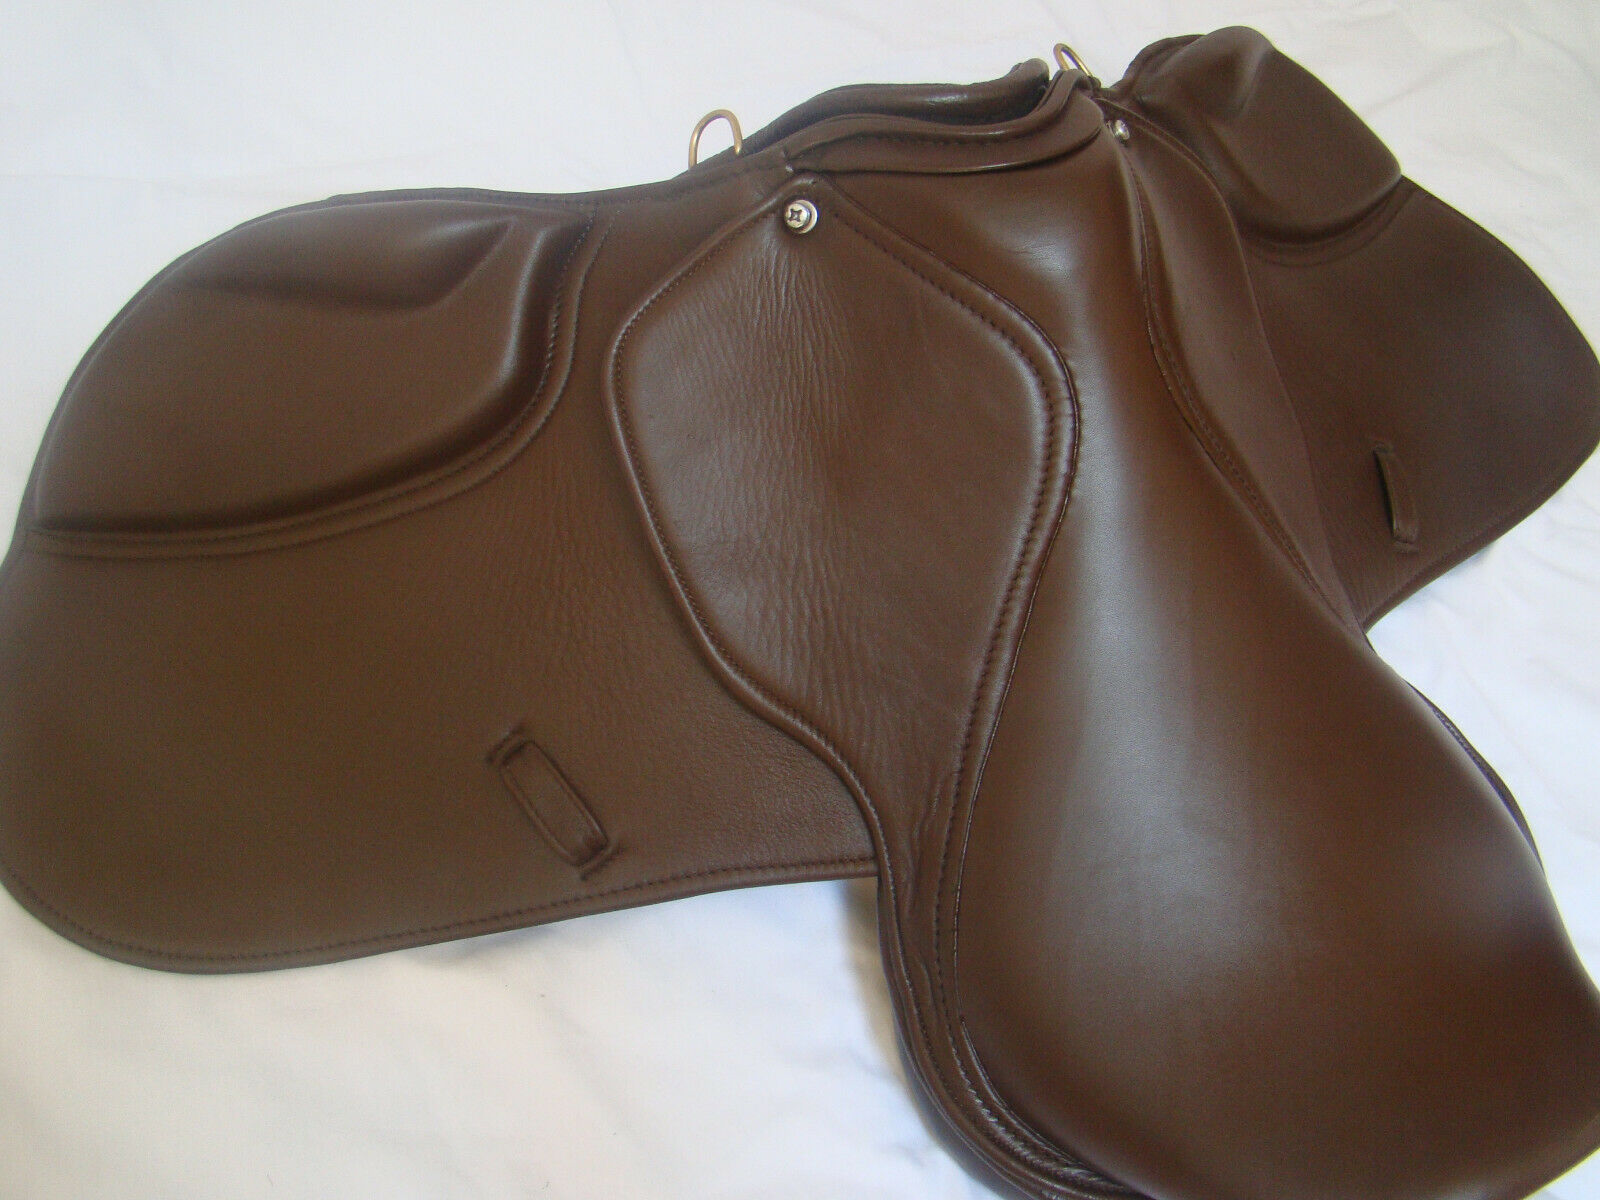 English Saddle 17.5 Real Leather all purpose horse saddle